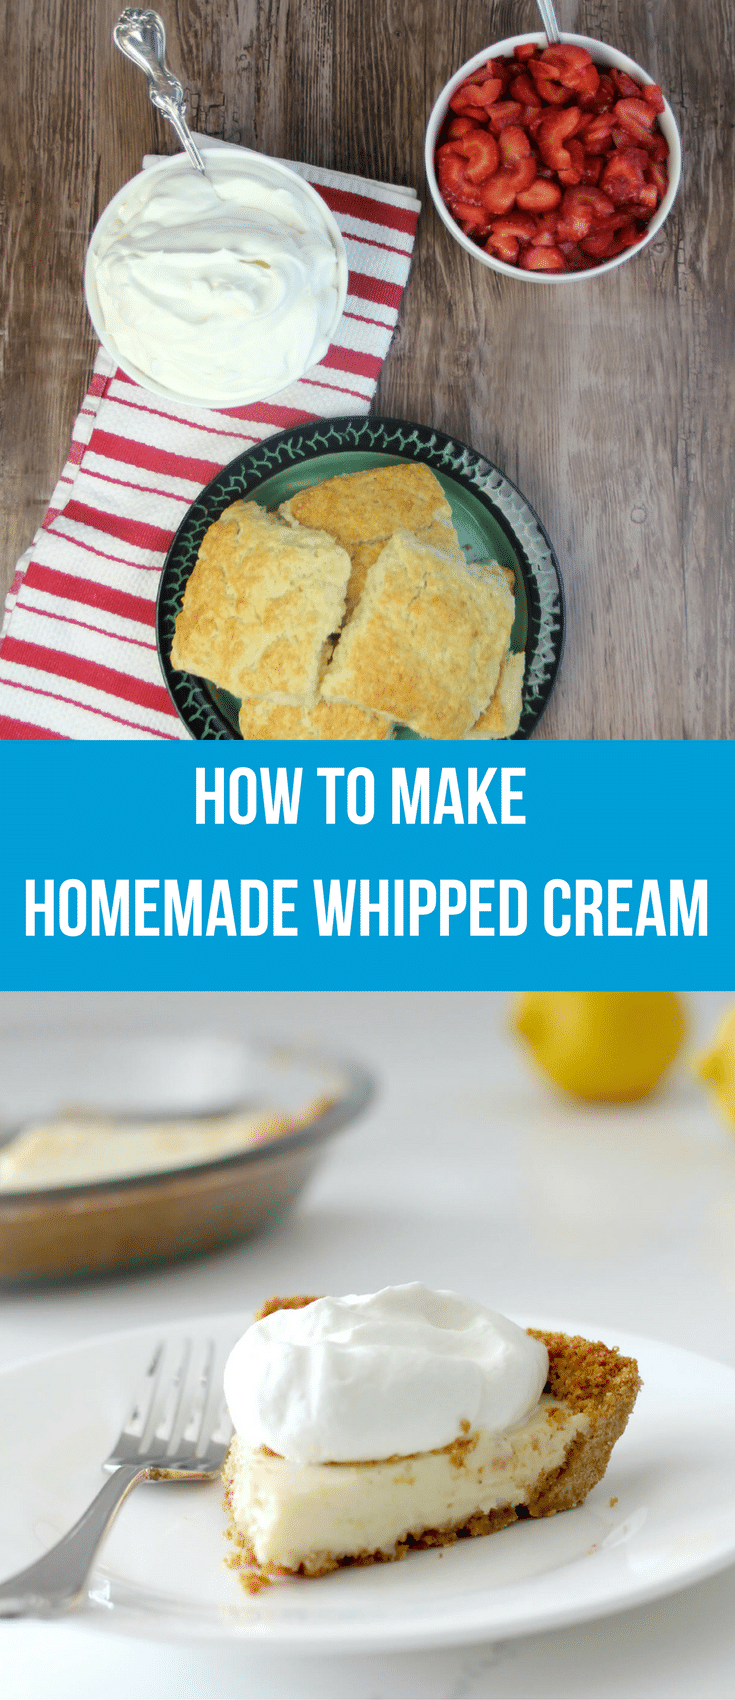 Homemade whipped cream is quick and easy to make and tastes so much better than anything from a can or tub! Even a kid can make it!